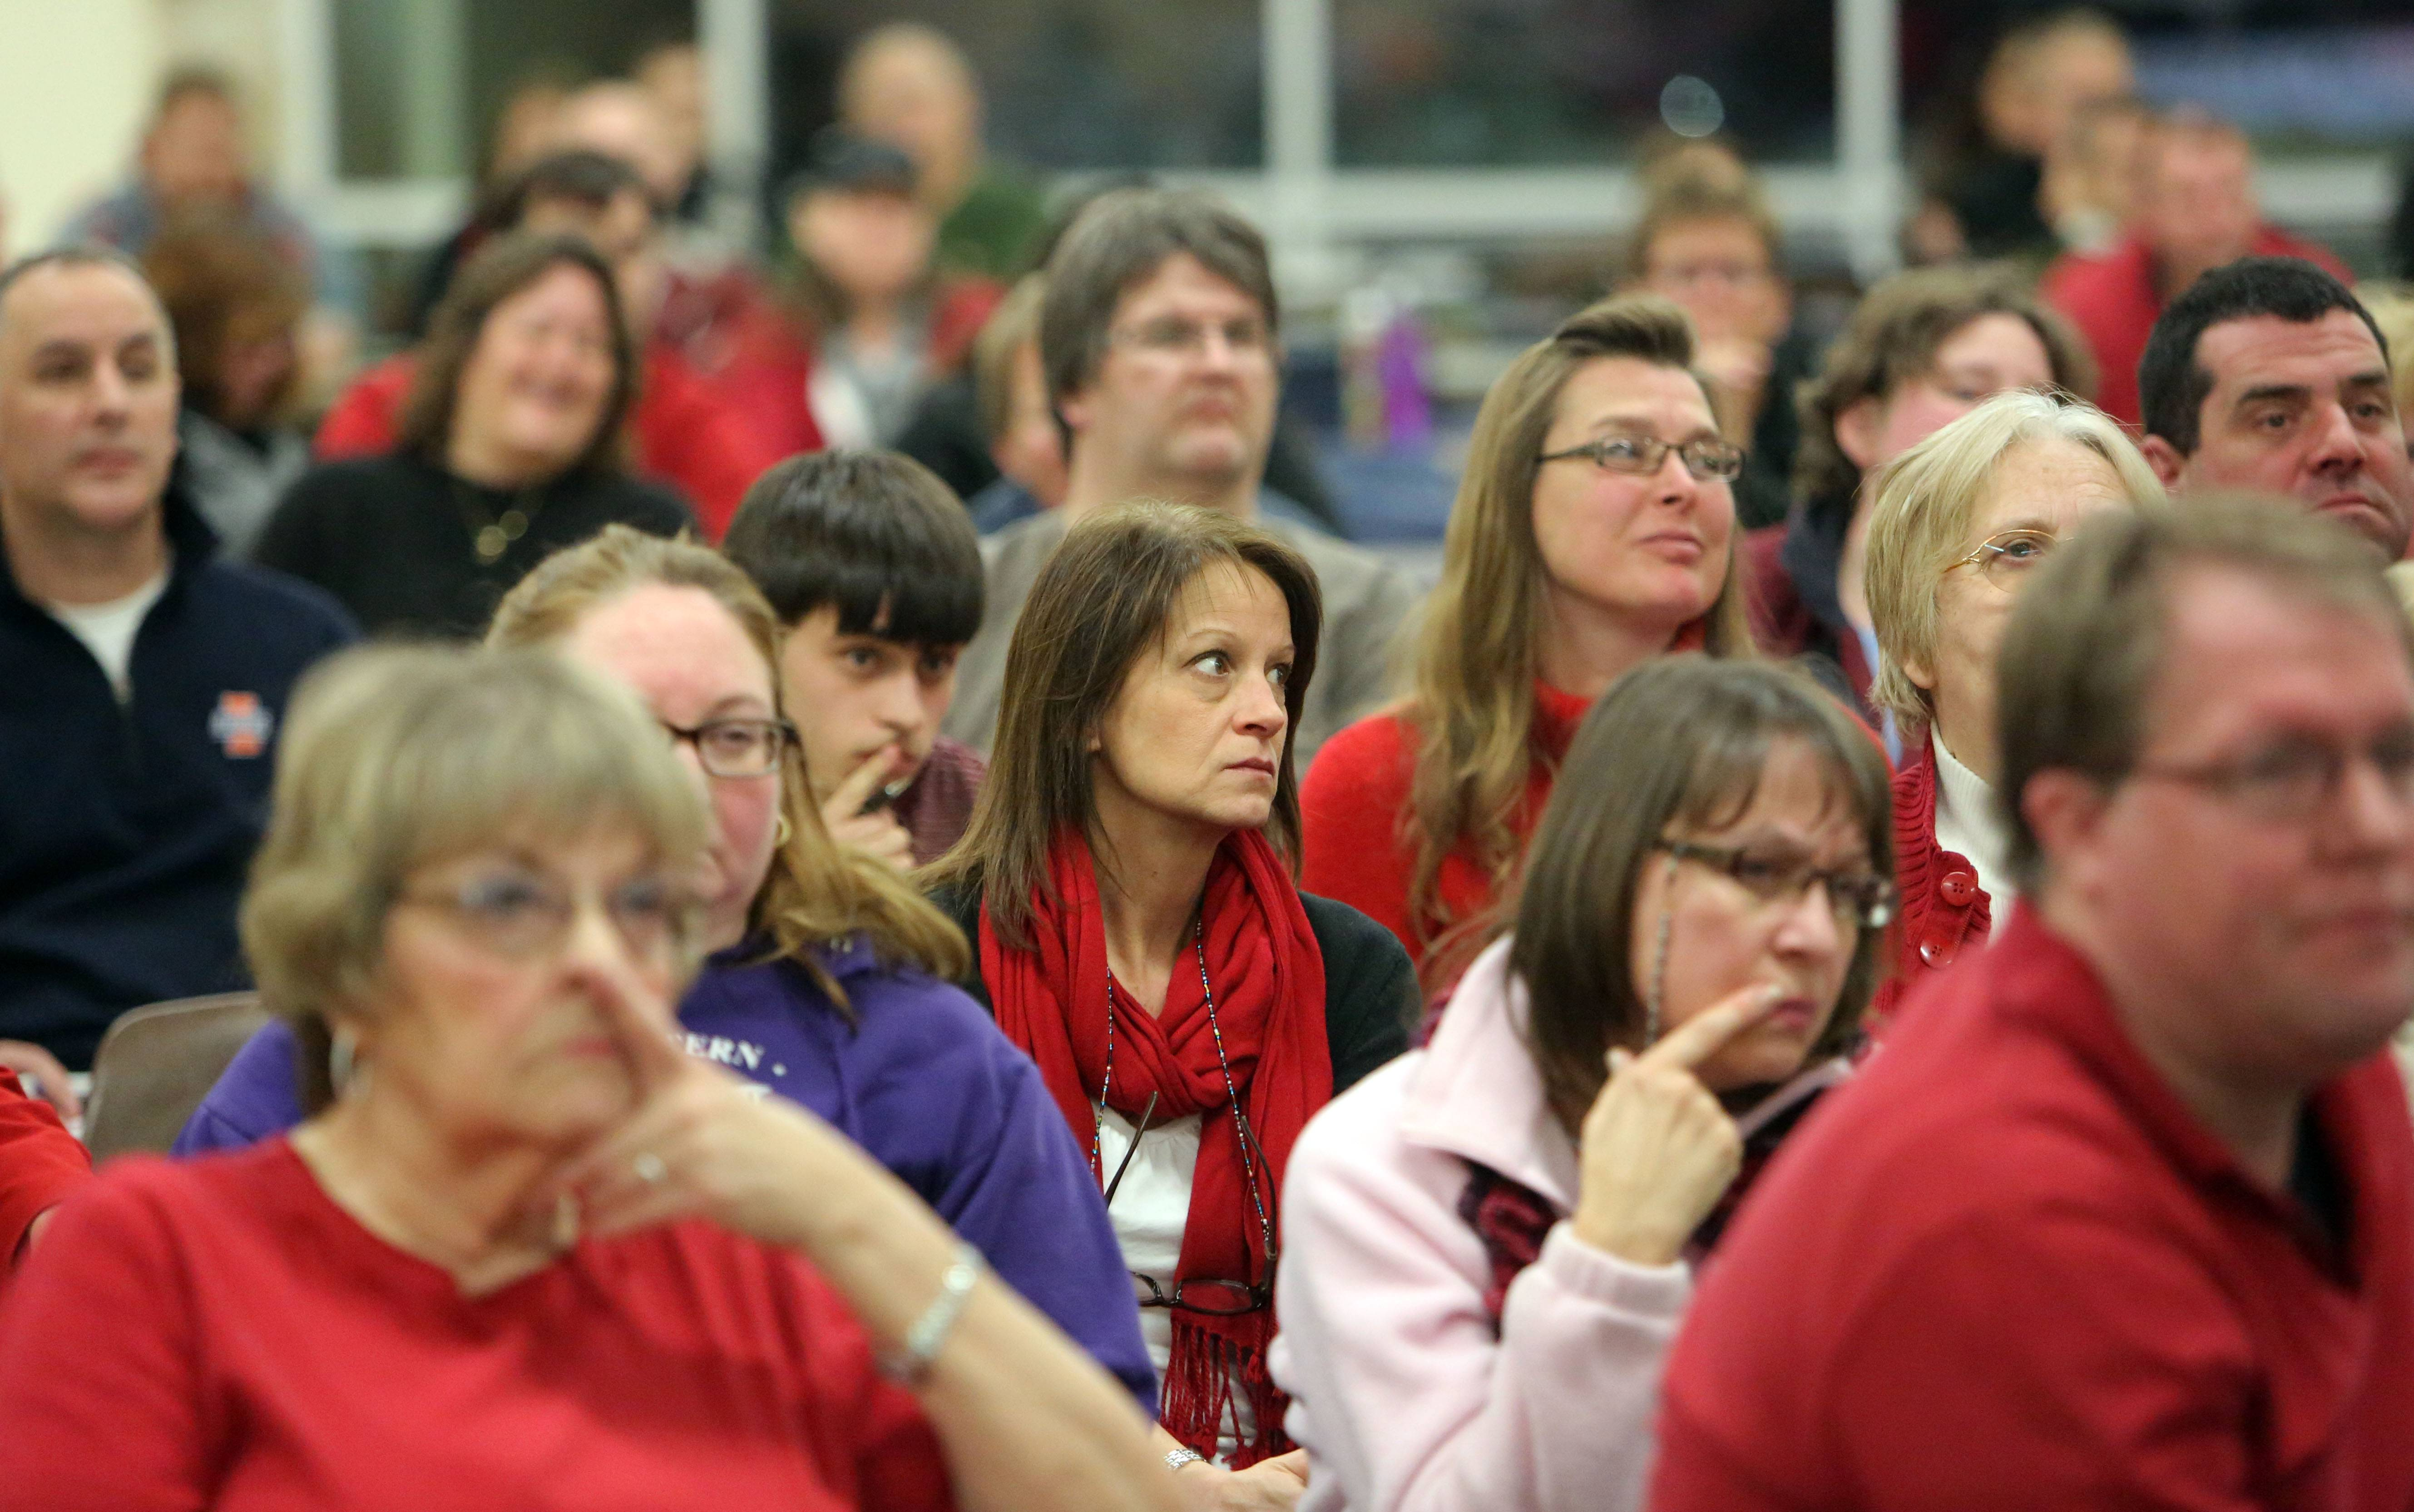 Wauconda administrator gives pitch for 911 outsourcing